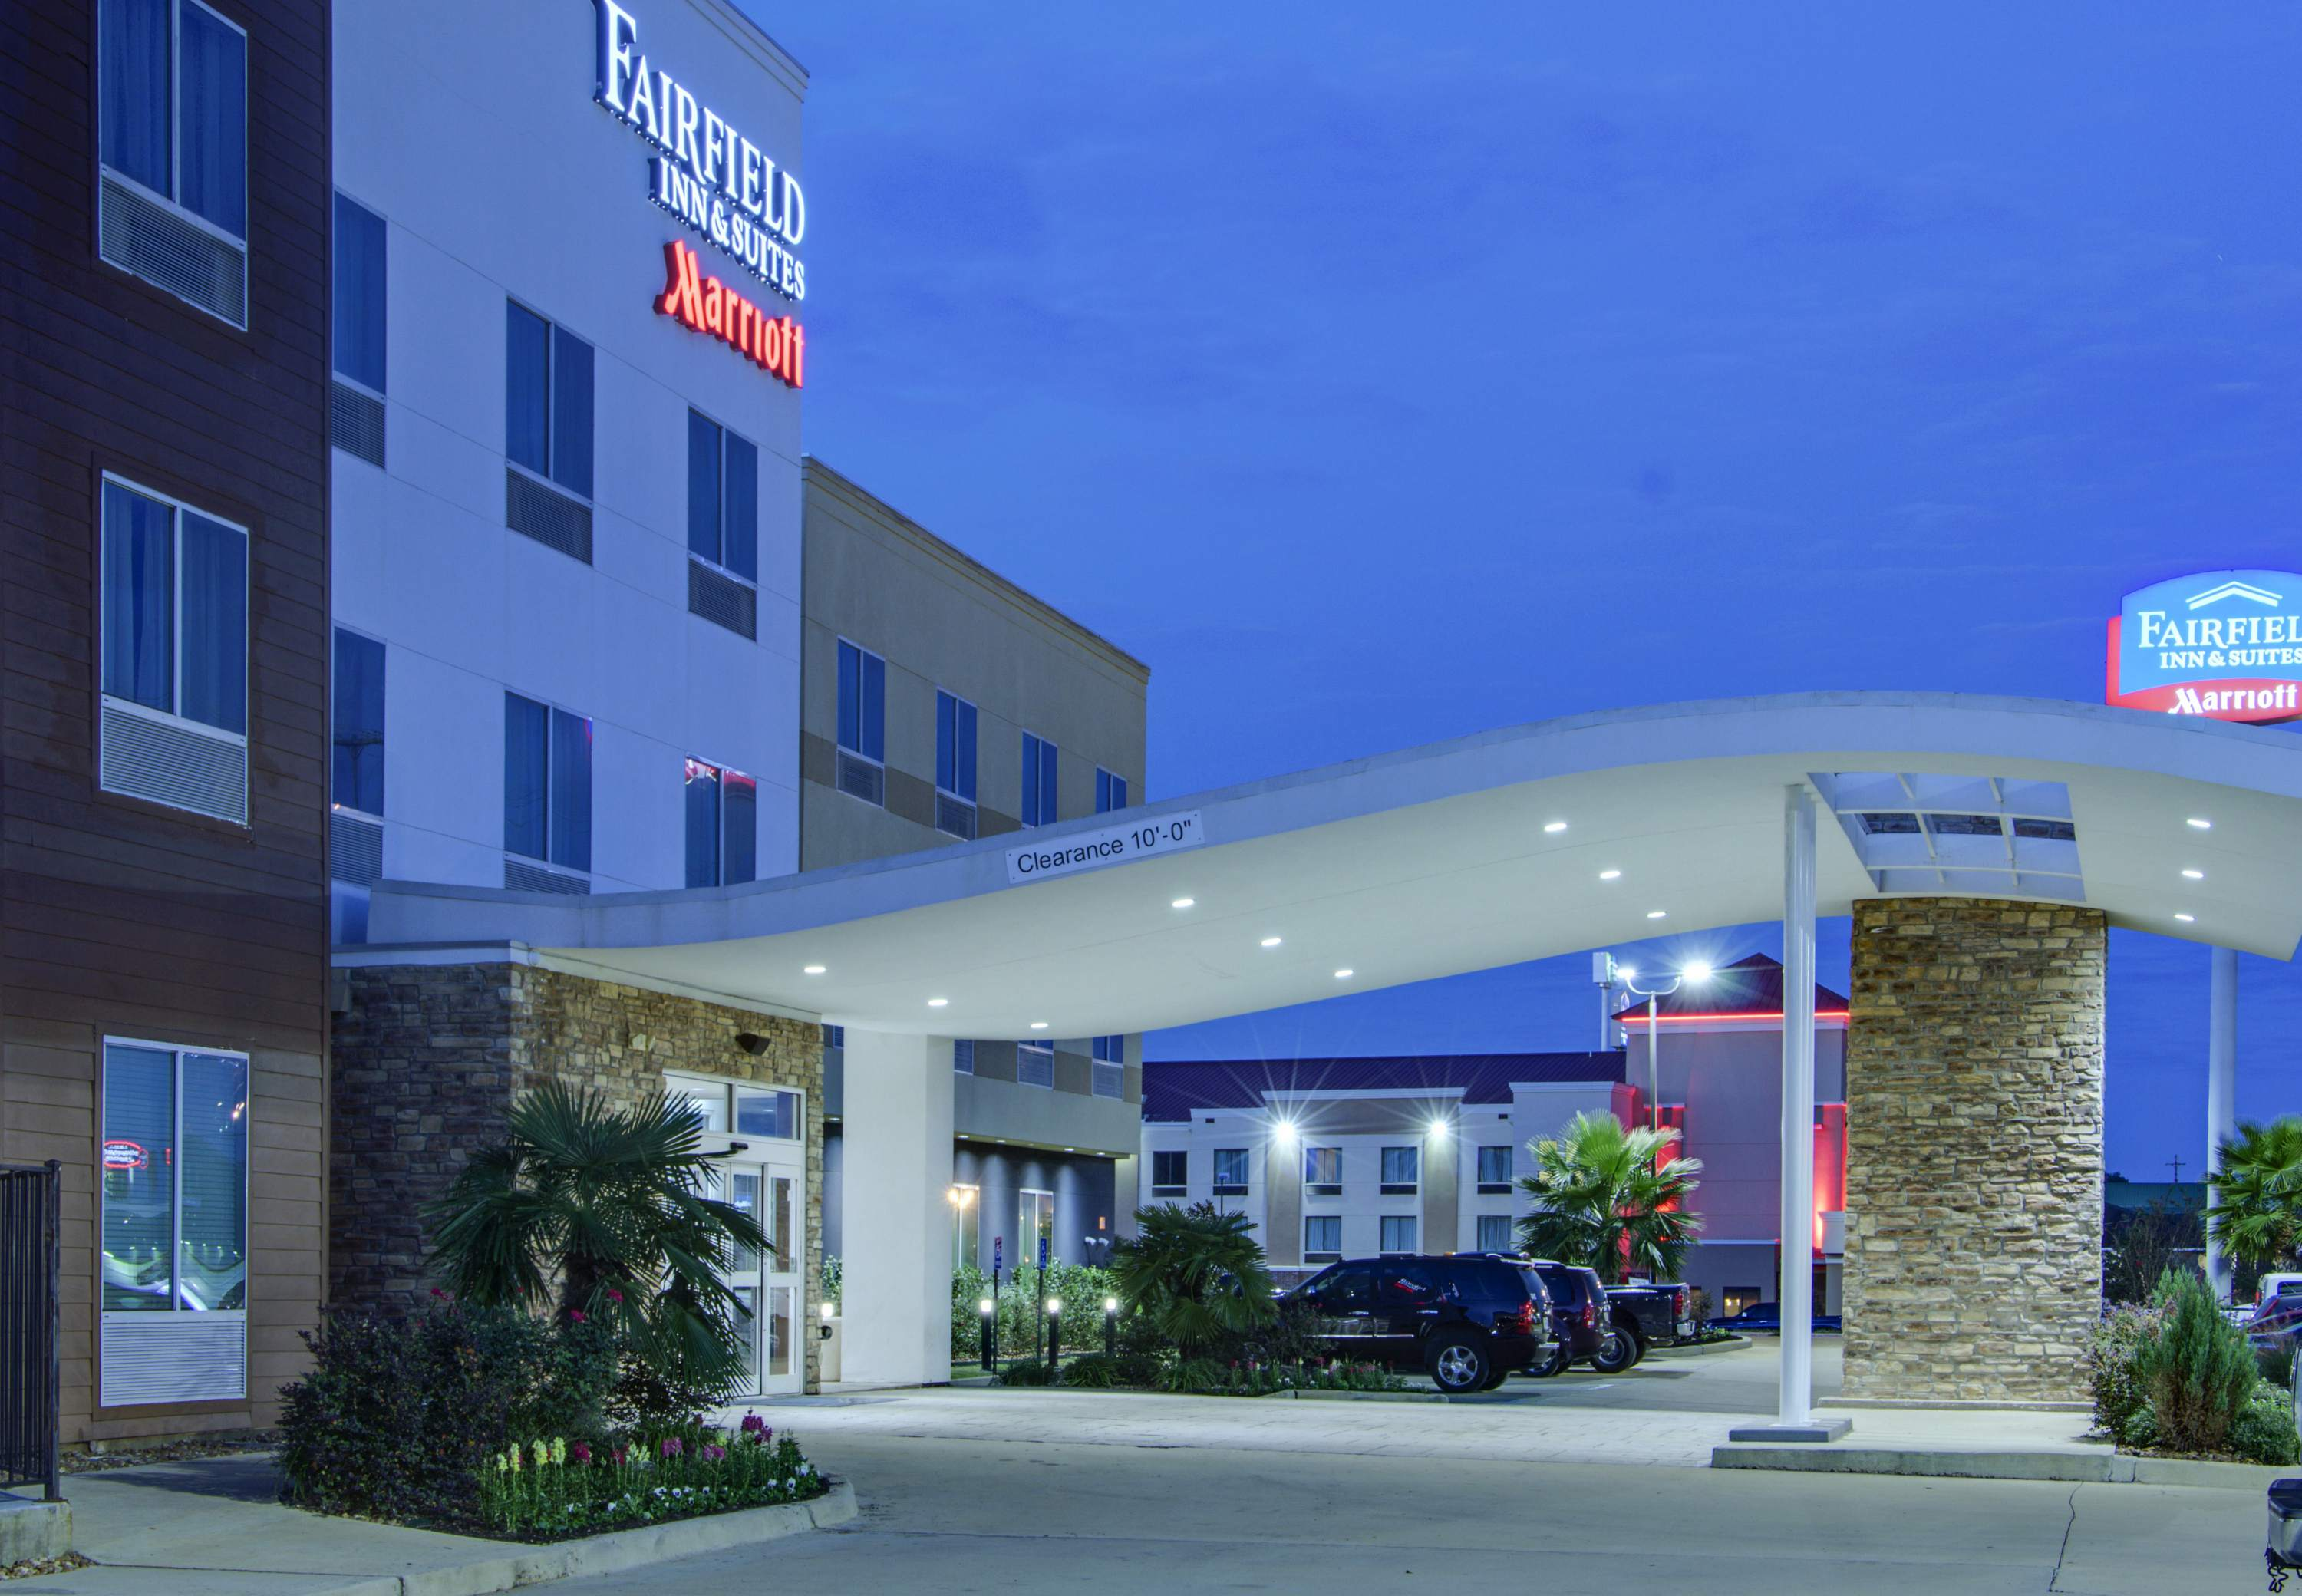 Fairfield Inn & Suites by Marriott Natchitoches image 0